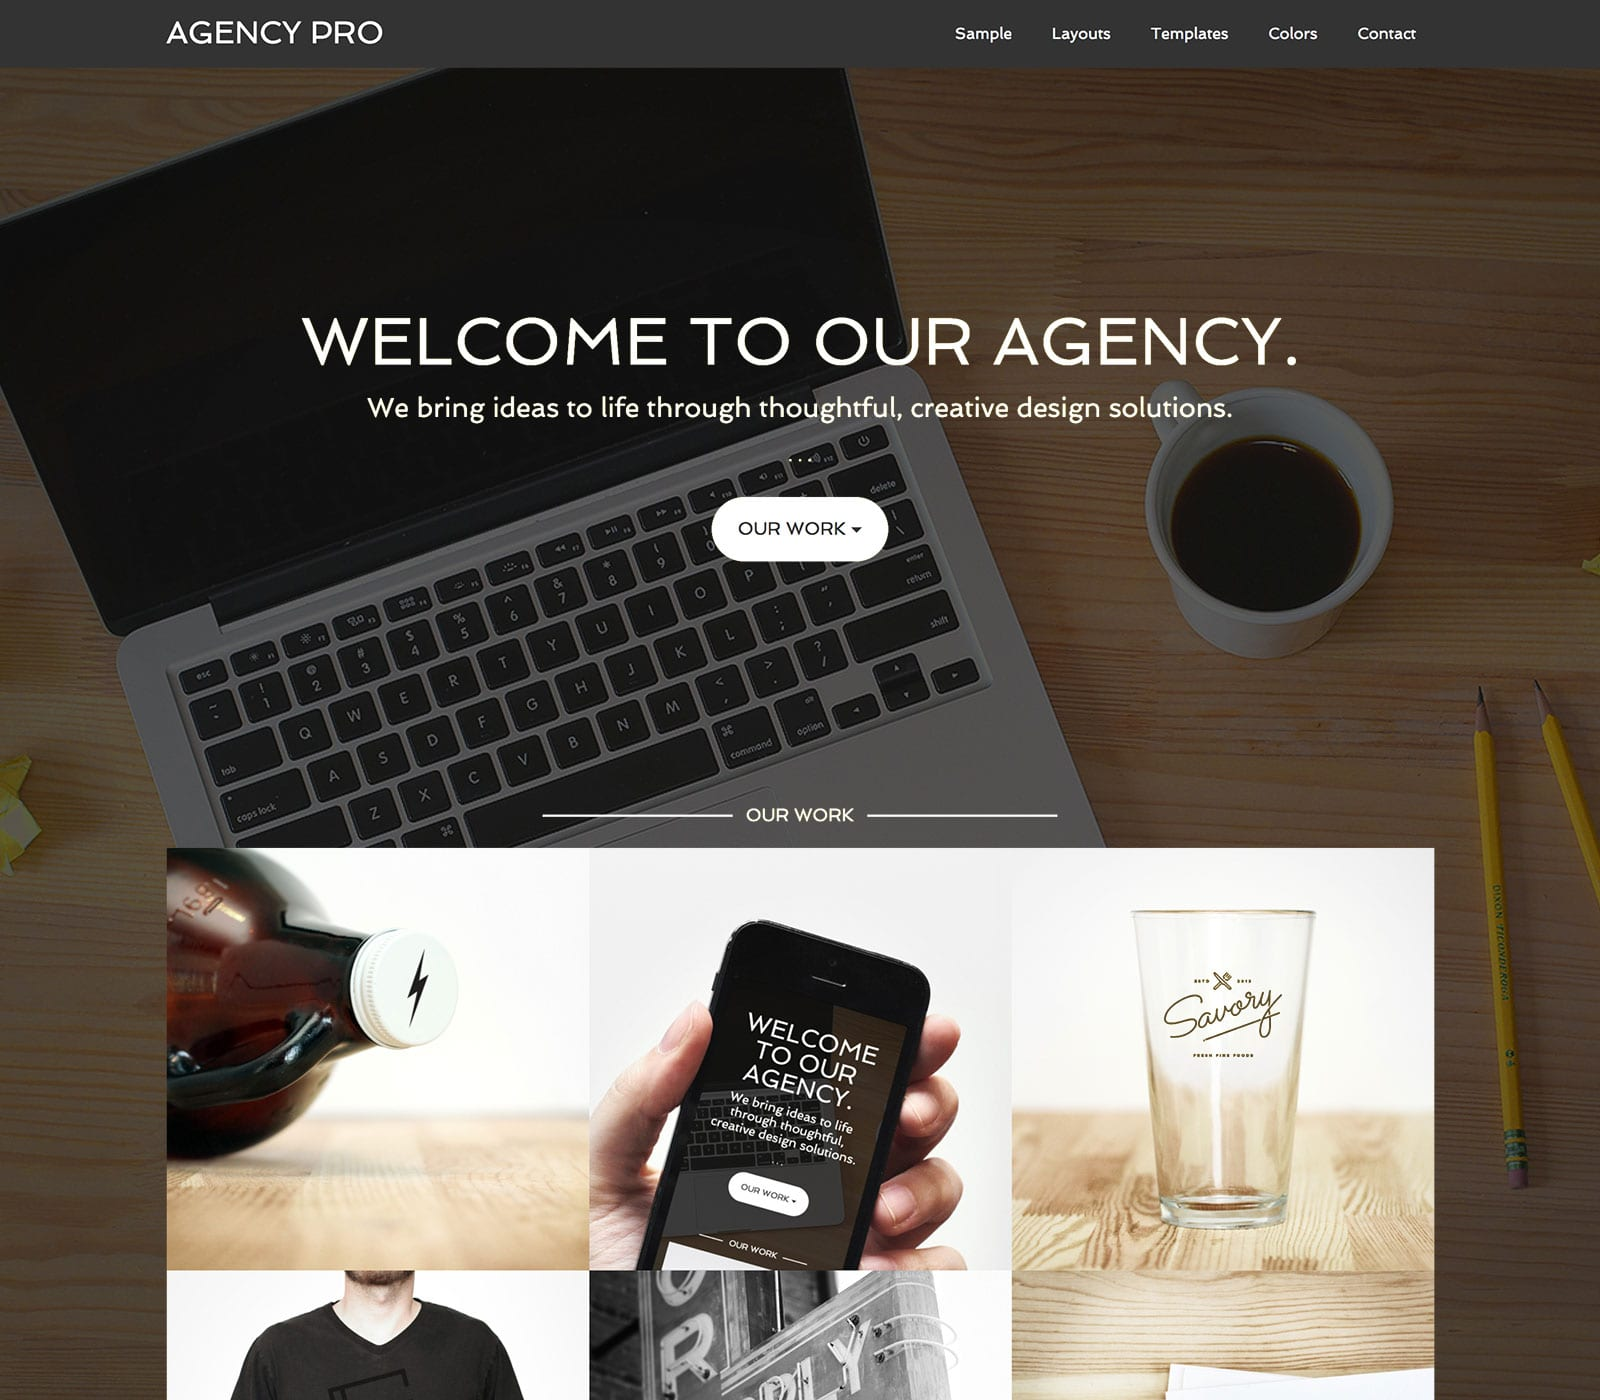 Agency Pro is a streamlined professional that presents your services with clarity and confidence. Make a great first impression for your agency with this smart looking and easy to use Studiopress Child Theme.